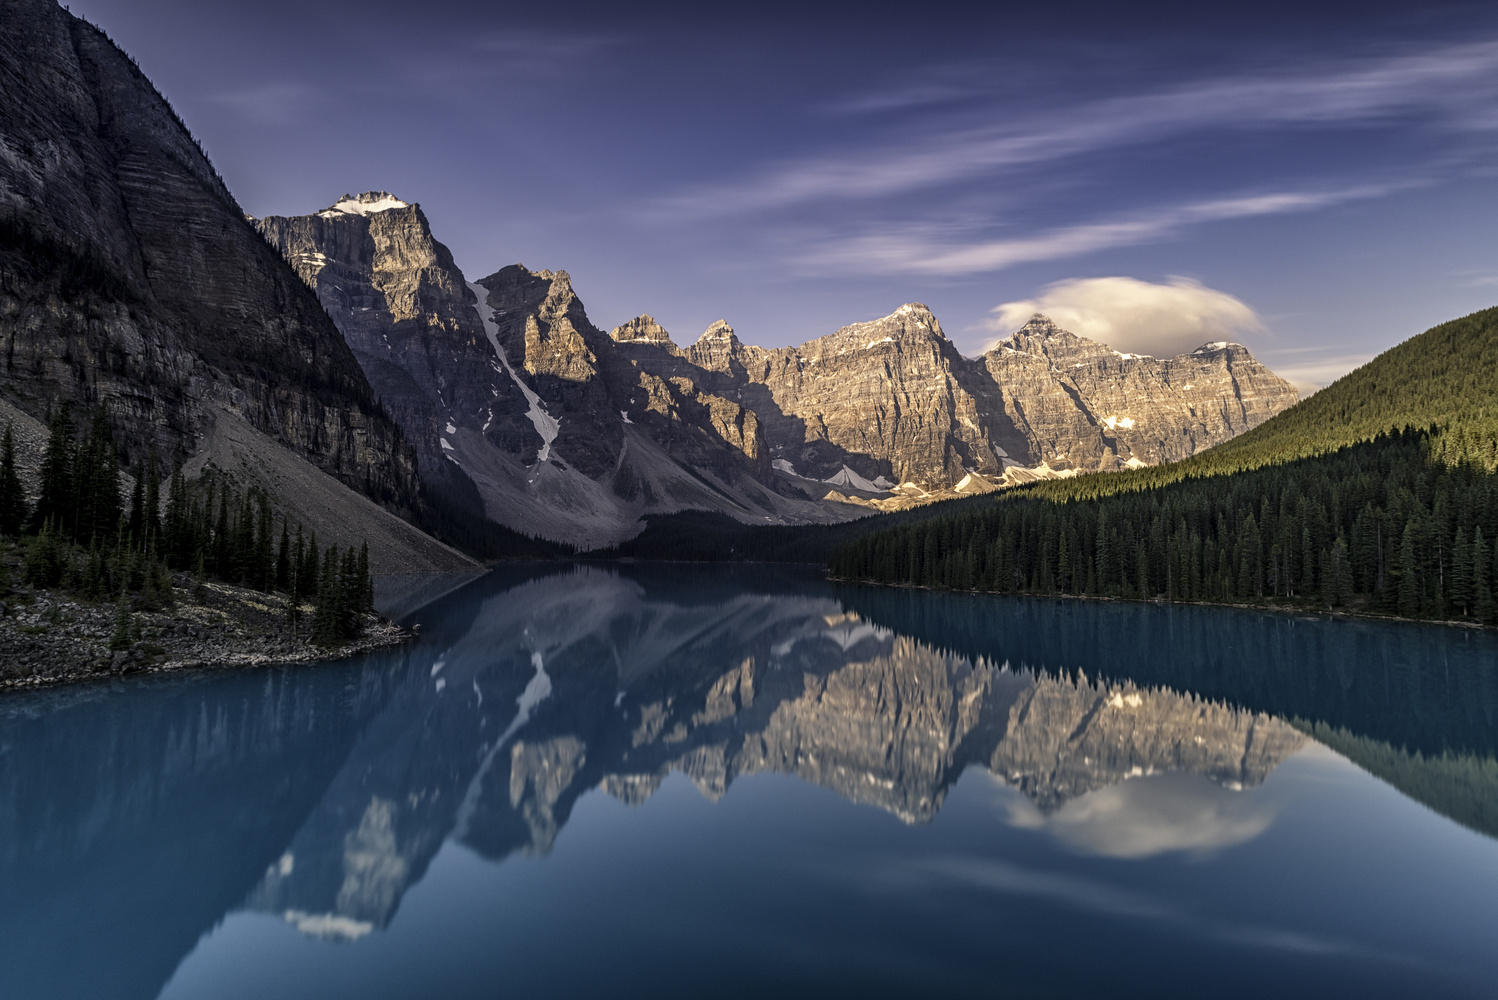 Lake Moraine by Andreas Fink